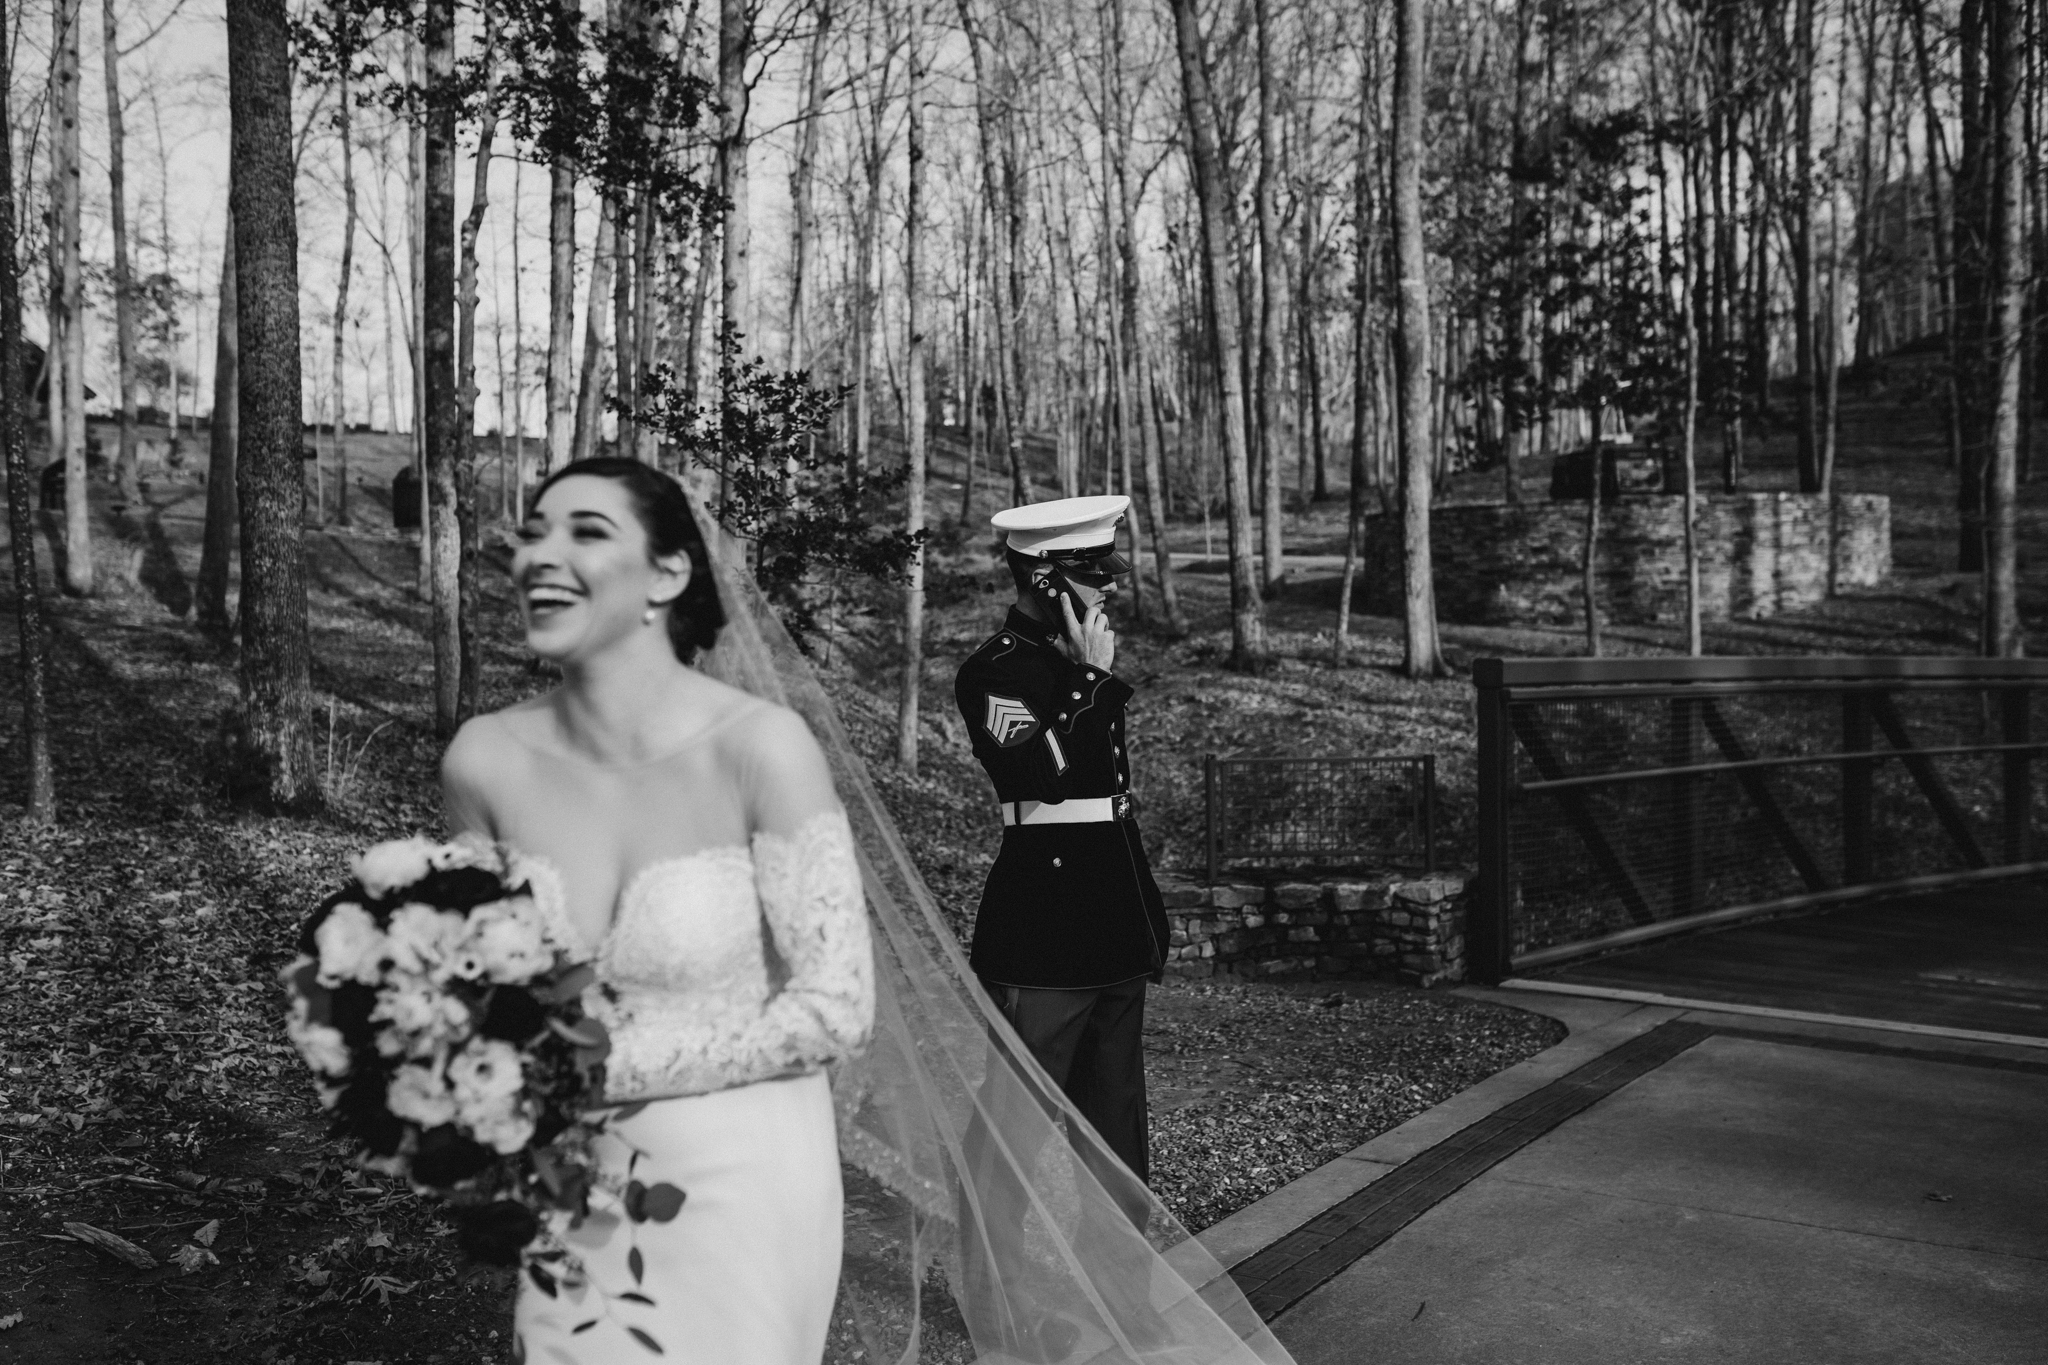 solinsky_wedding_national_museum_of_marine_corp-21.jpg